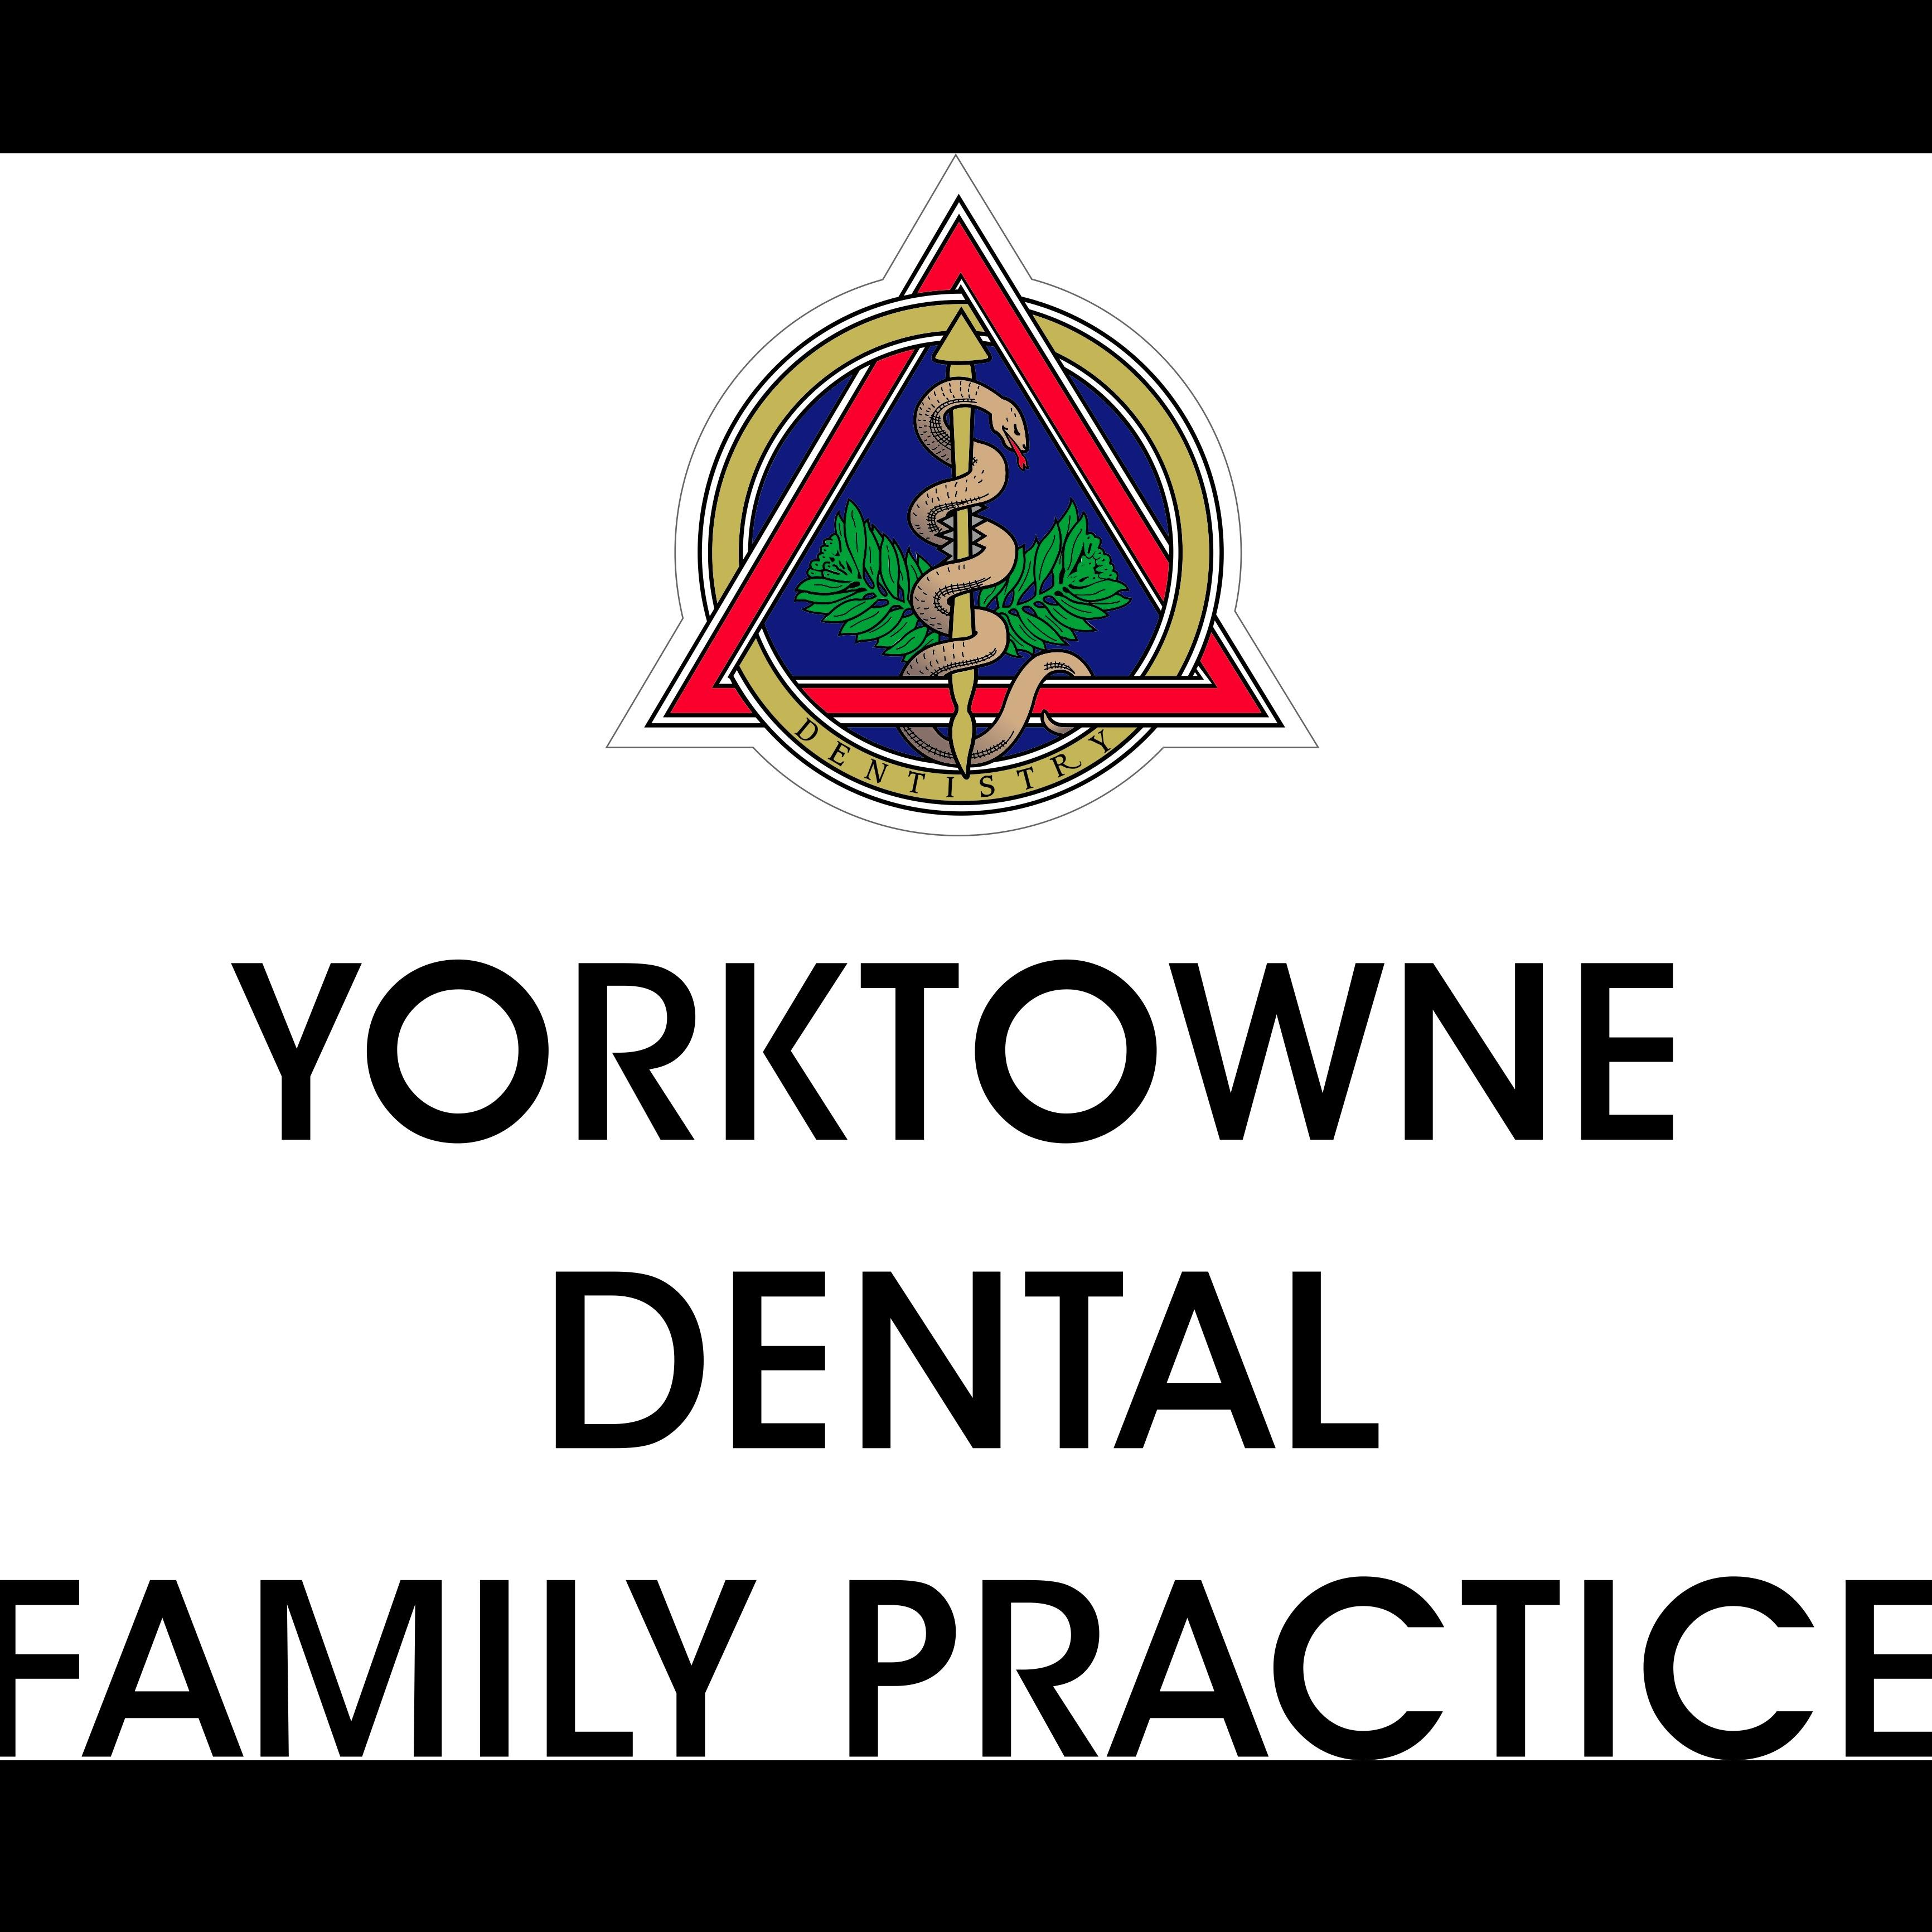 Yorktowne Dental Family Practice